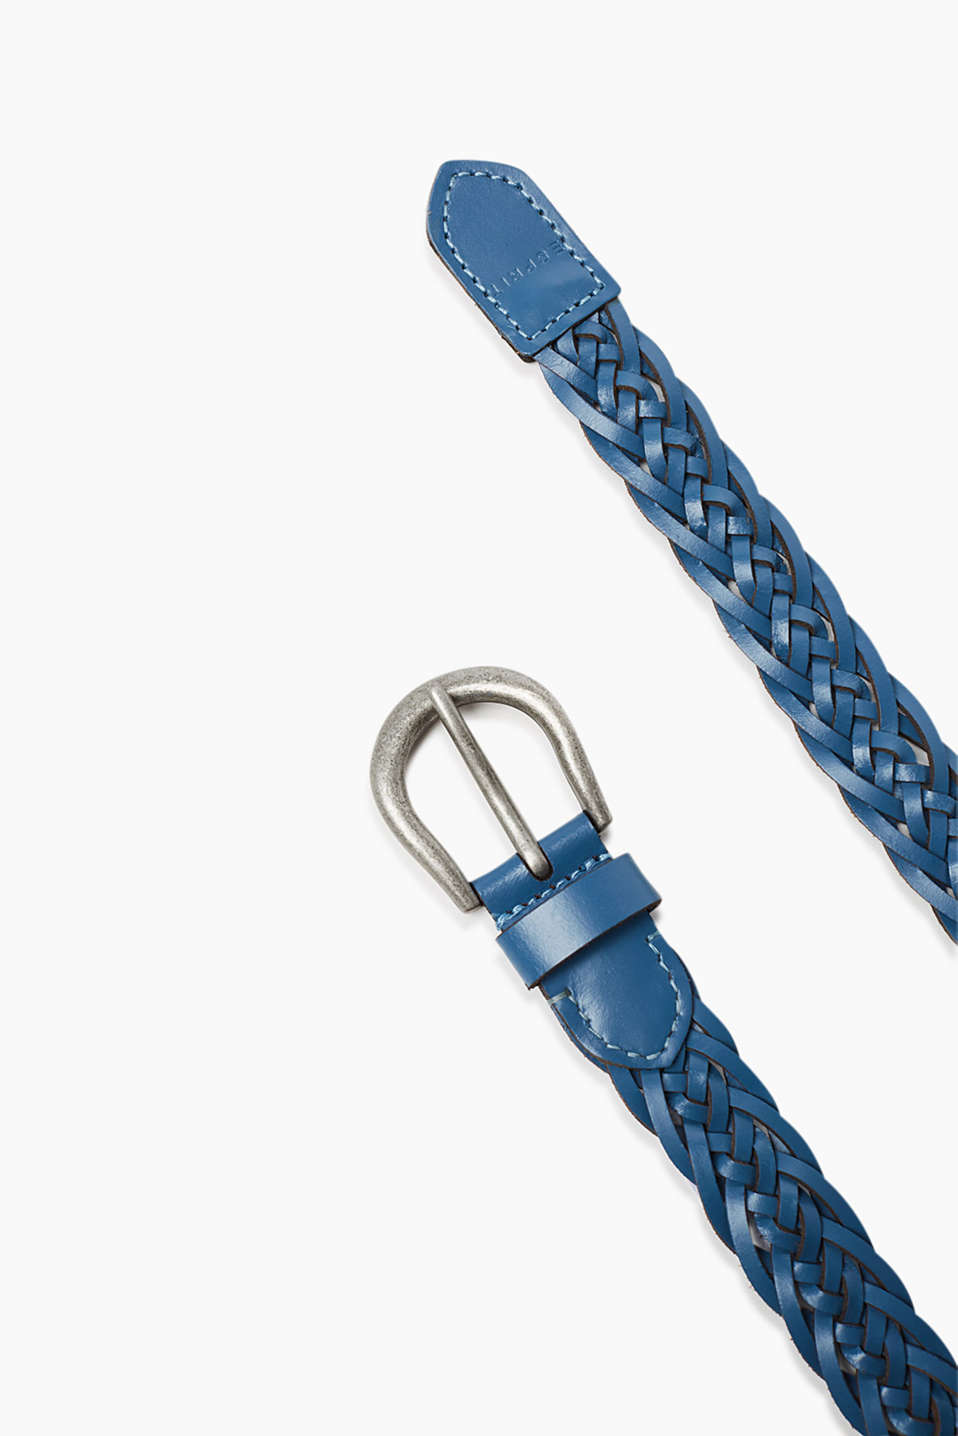 In a braided look: Belt with metal buckle